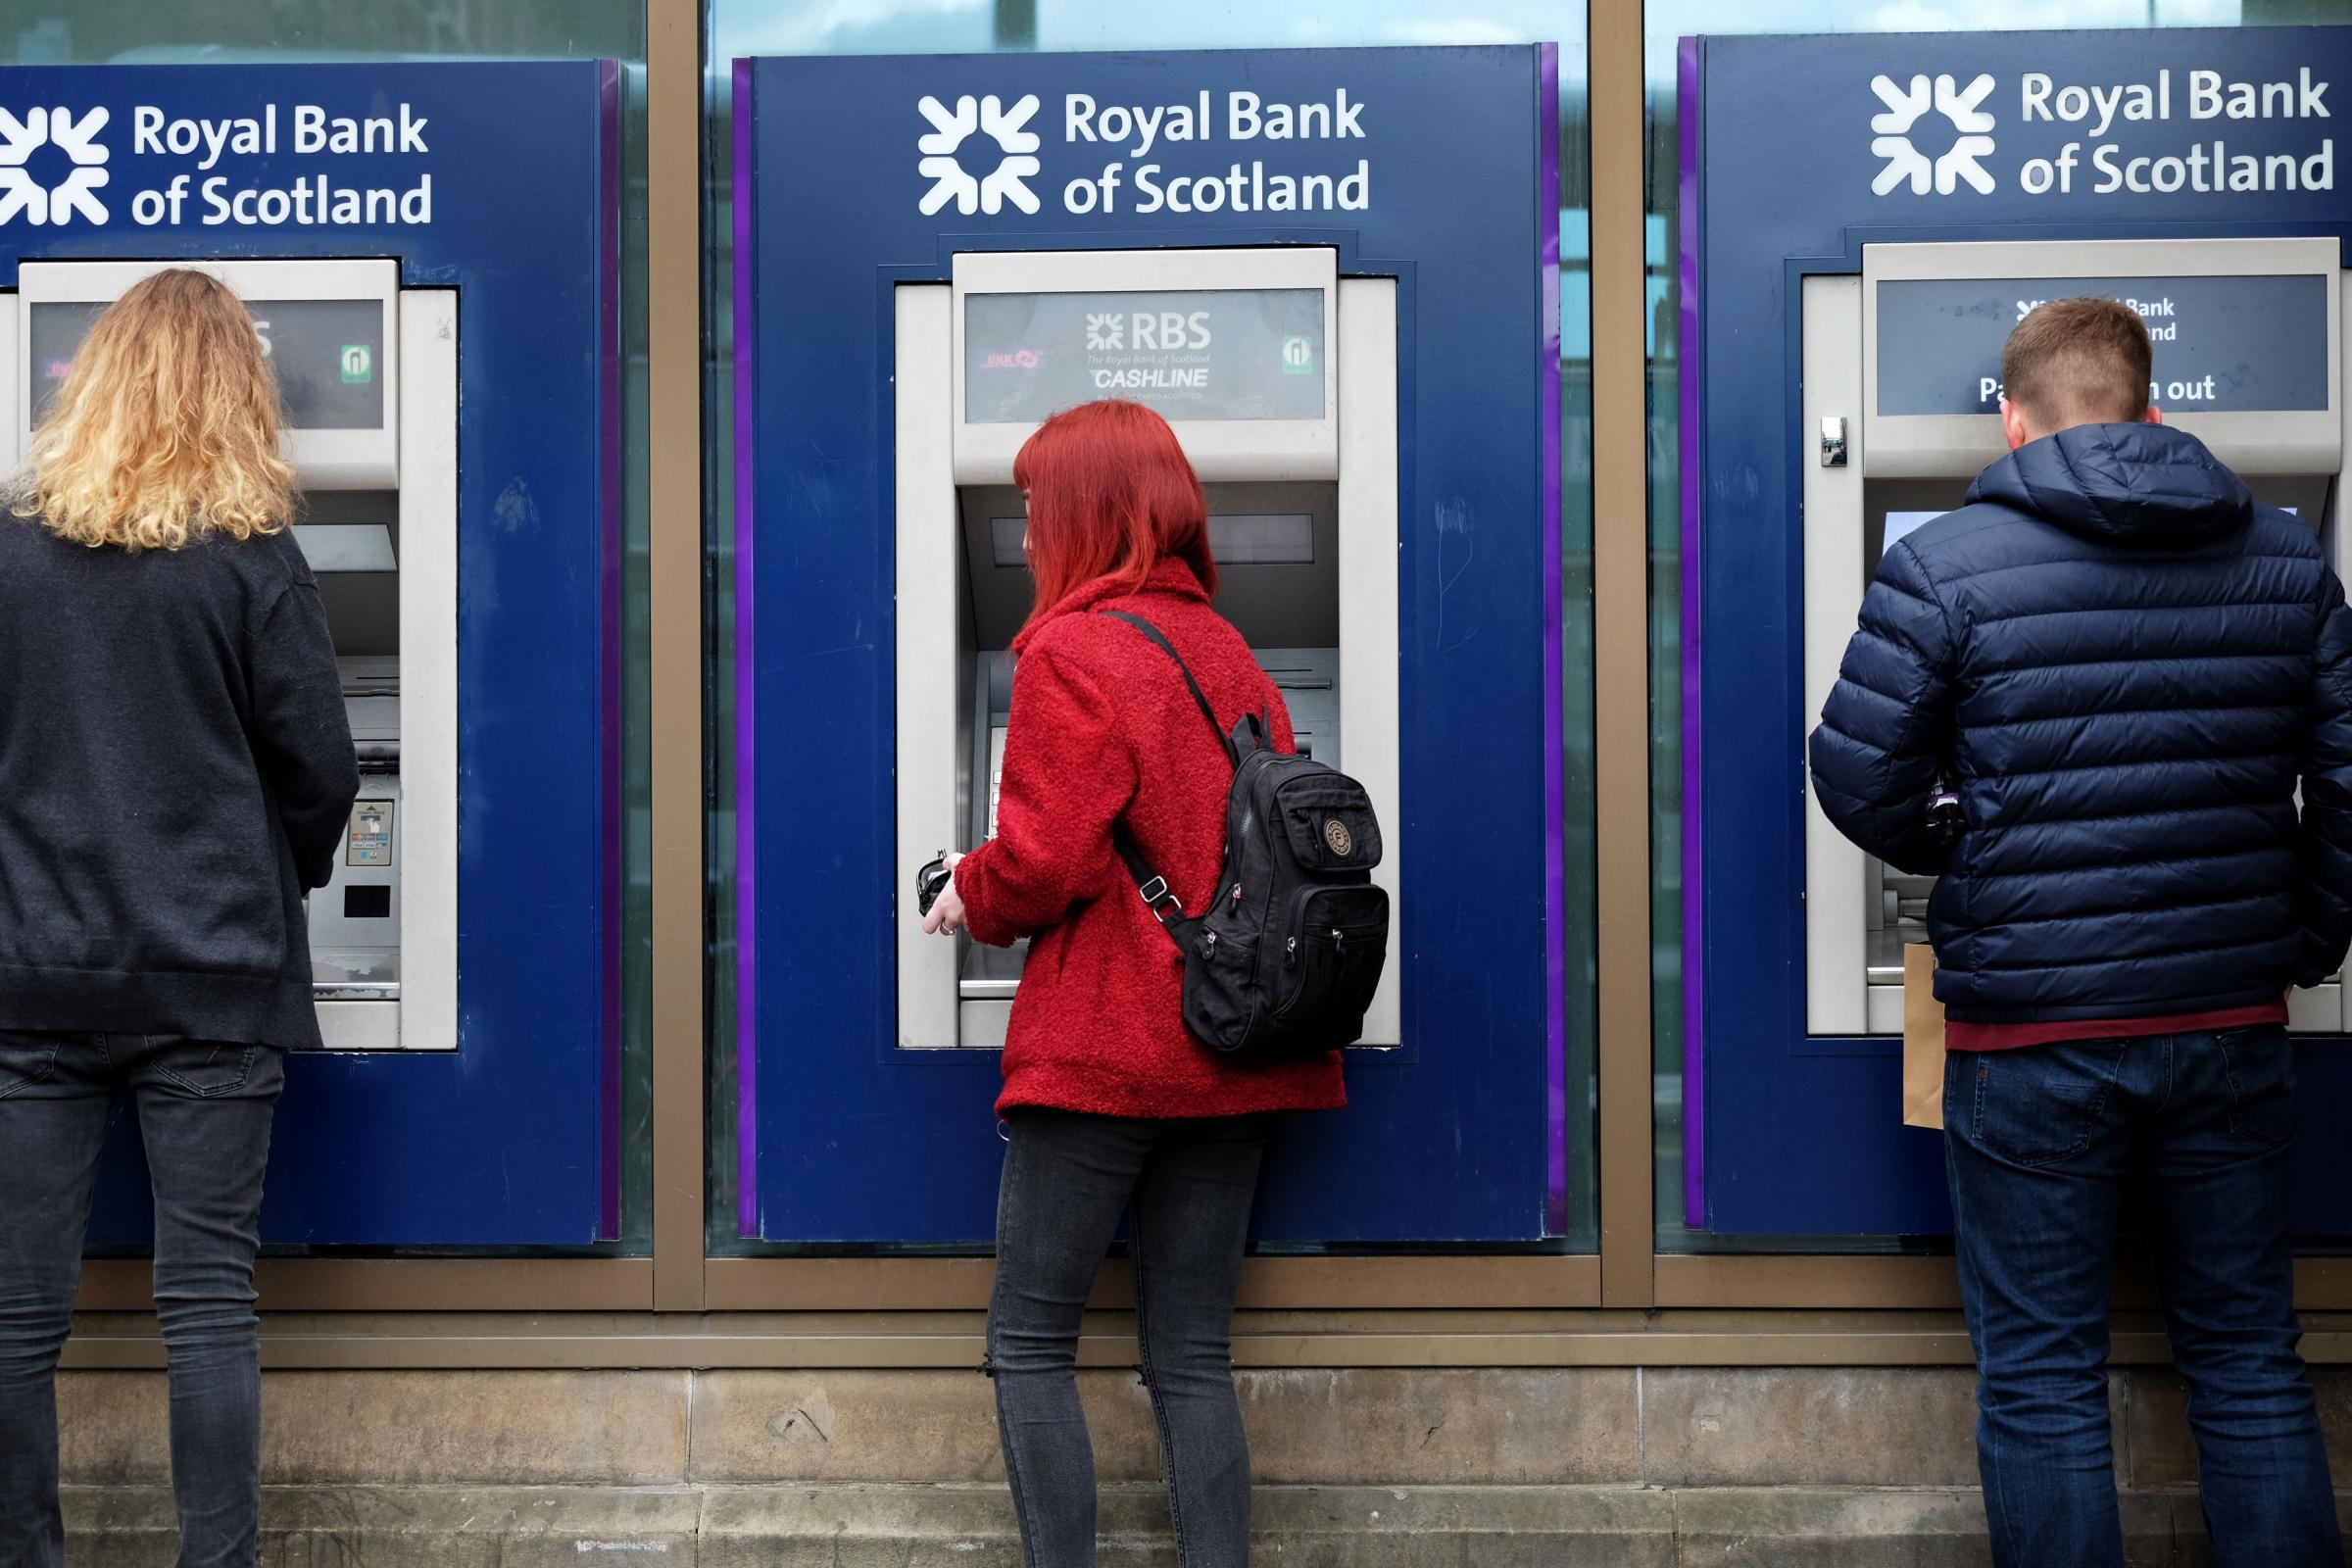 Customers at RBS cash machines